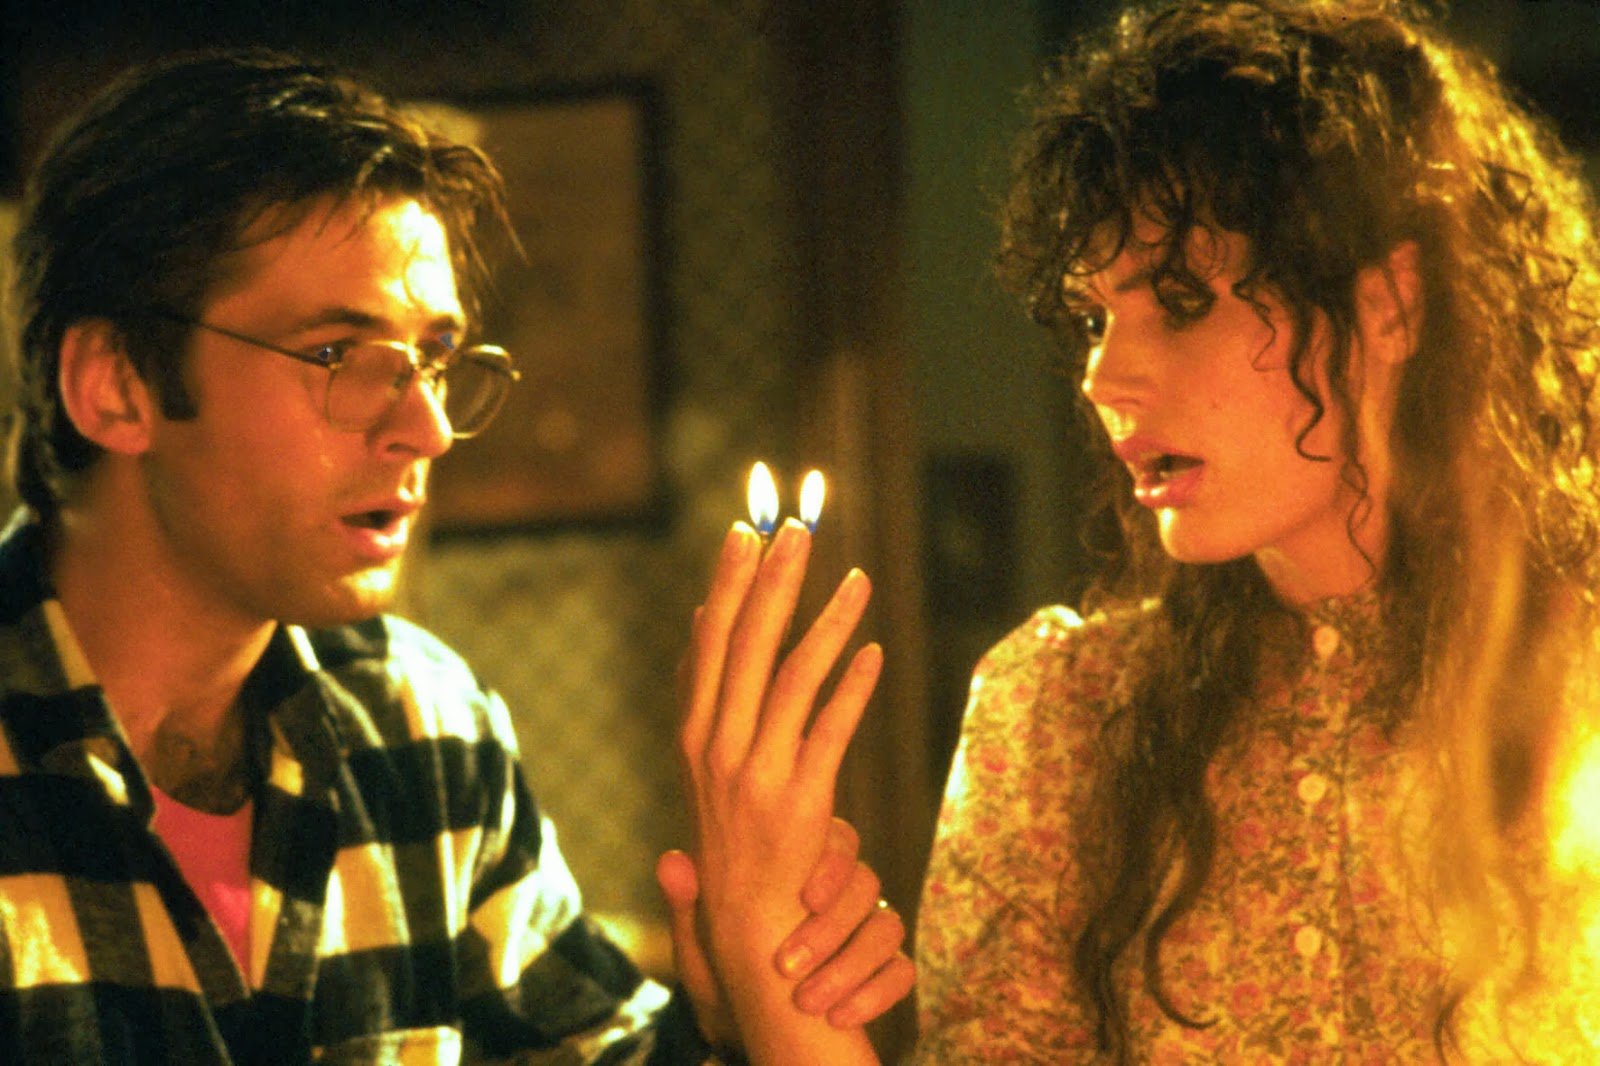 Beetlejuice 2 12 Things You May Not Have Realised About Beetlejuice